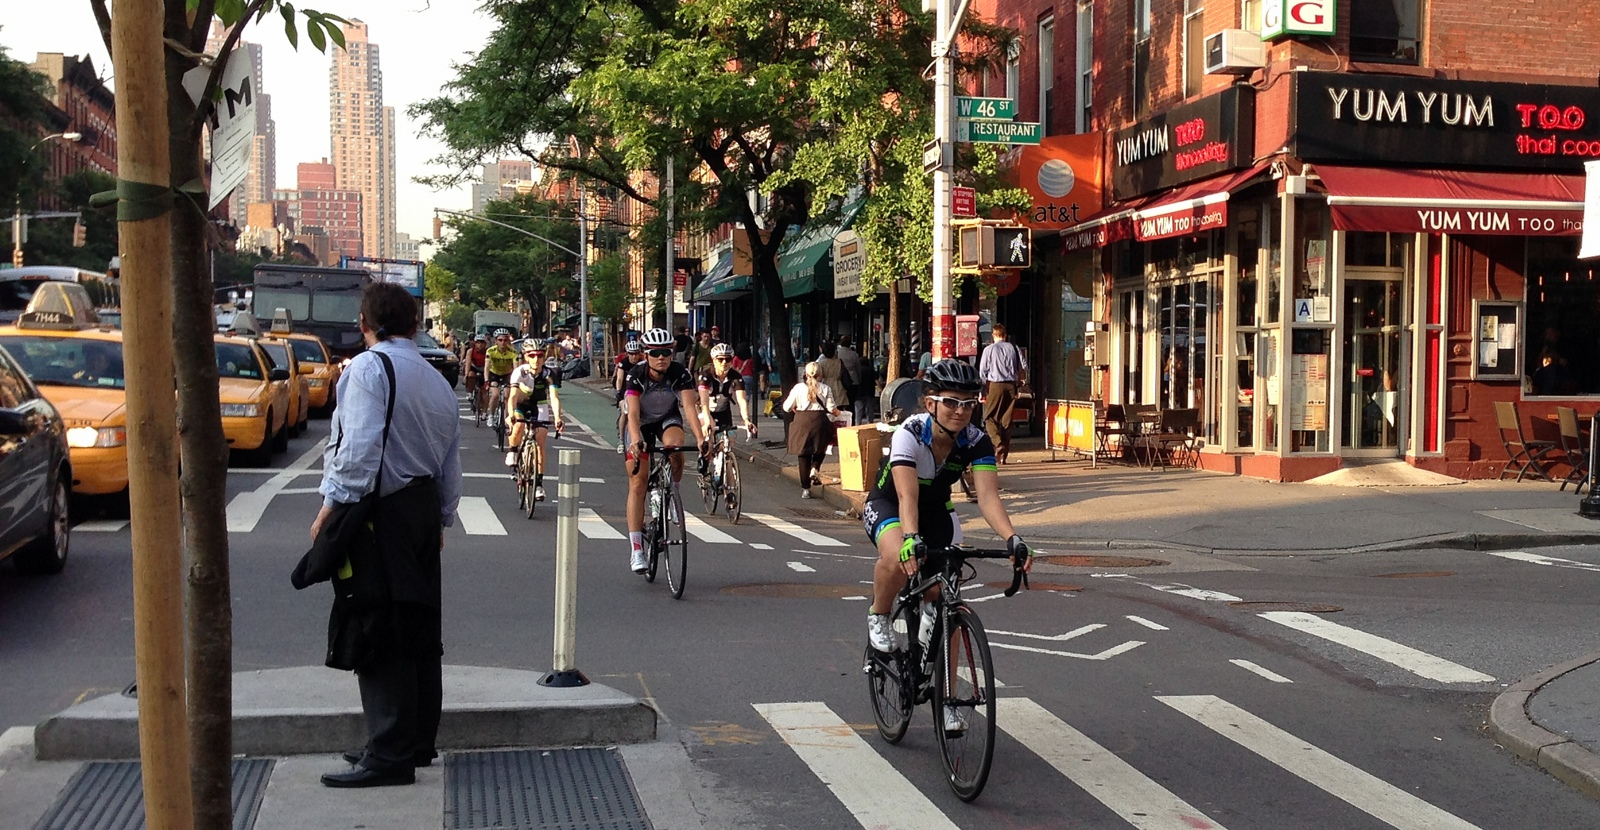 Photos SpecializedLululemon Pro Cycling Team Rides NYC NYC - Nyc map bike lanes